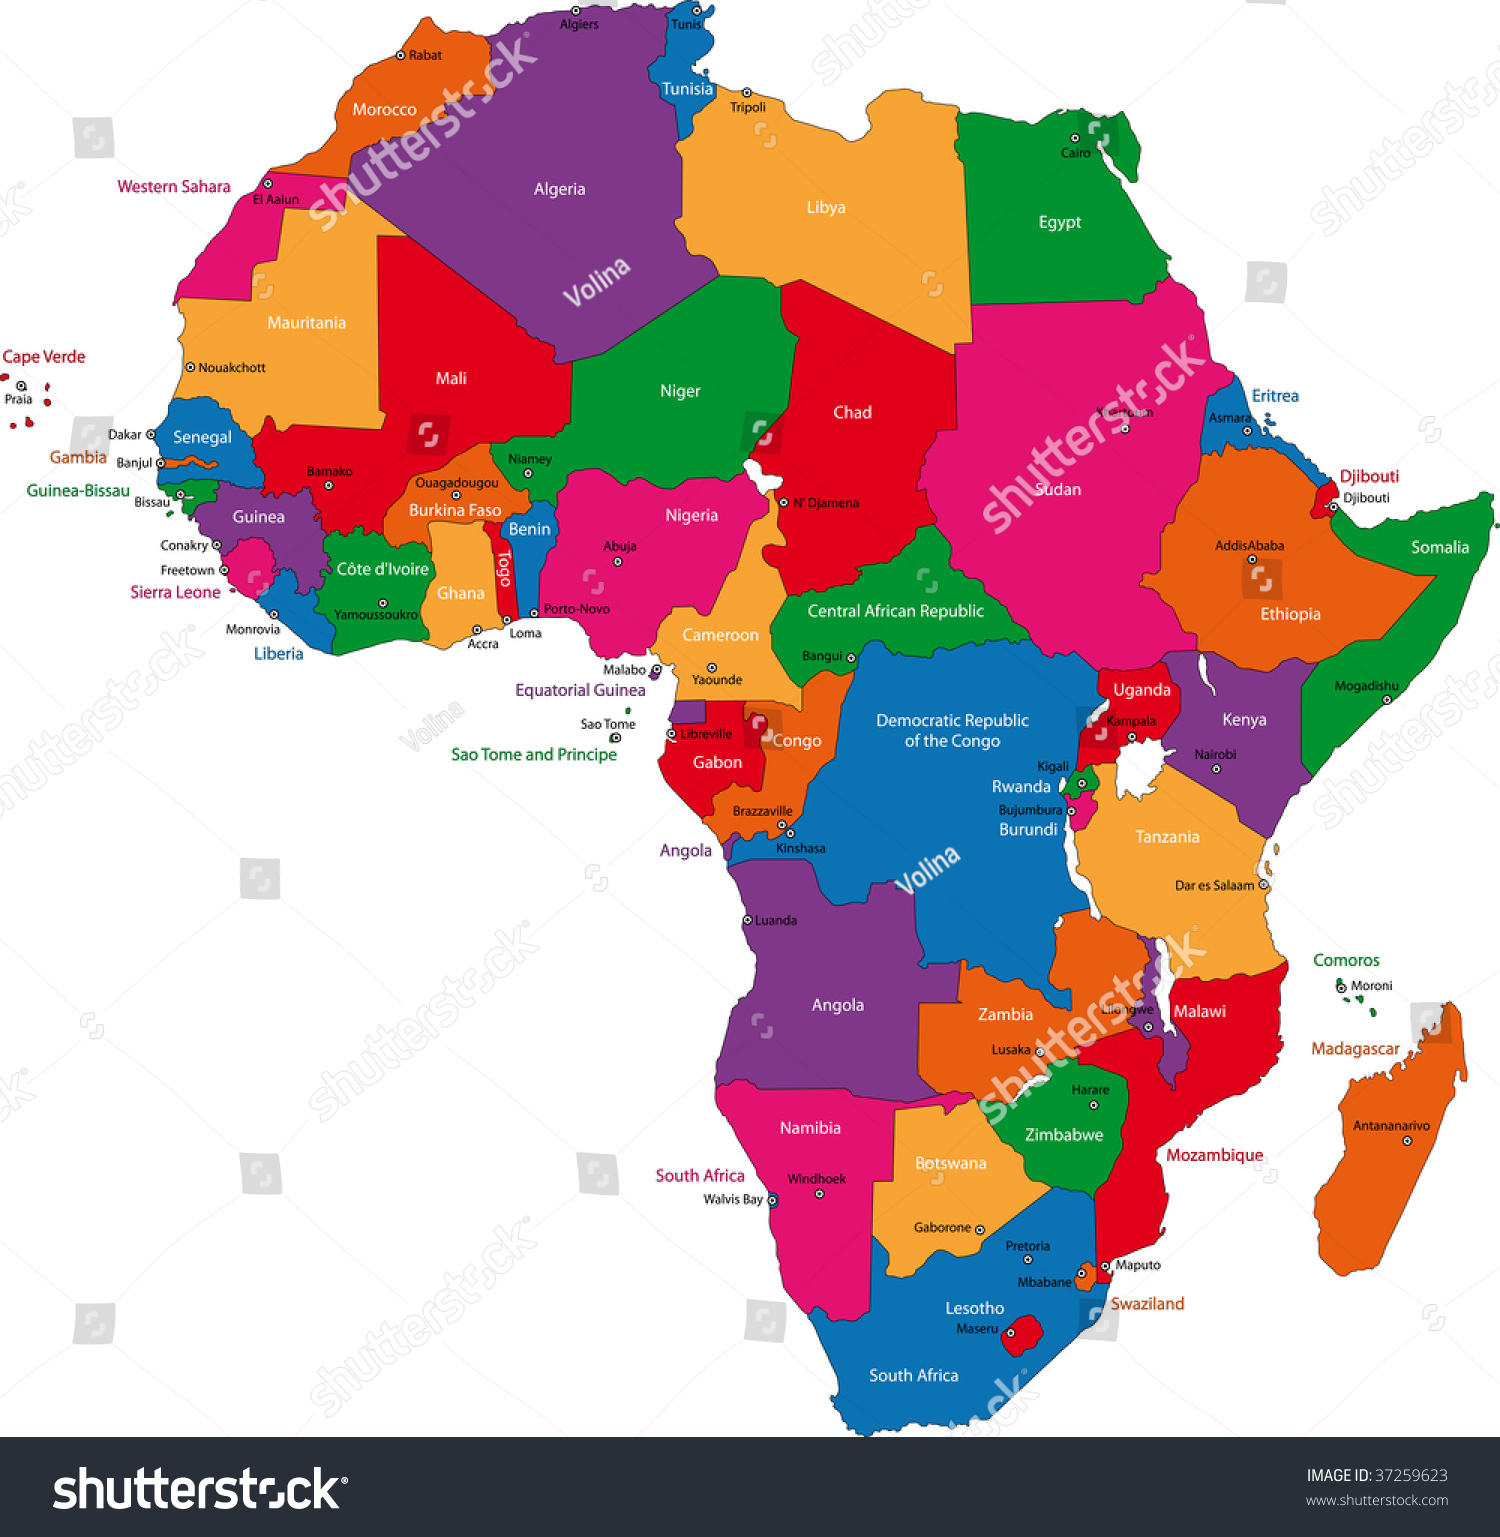 map of africa showing capital cities Colorful Africa Map Countries Capital Cities Stock Illustration map of africa showing capital cities